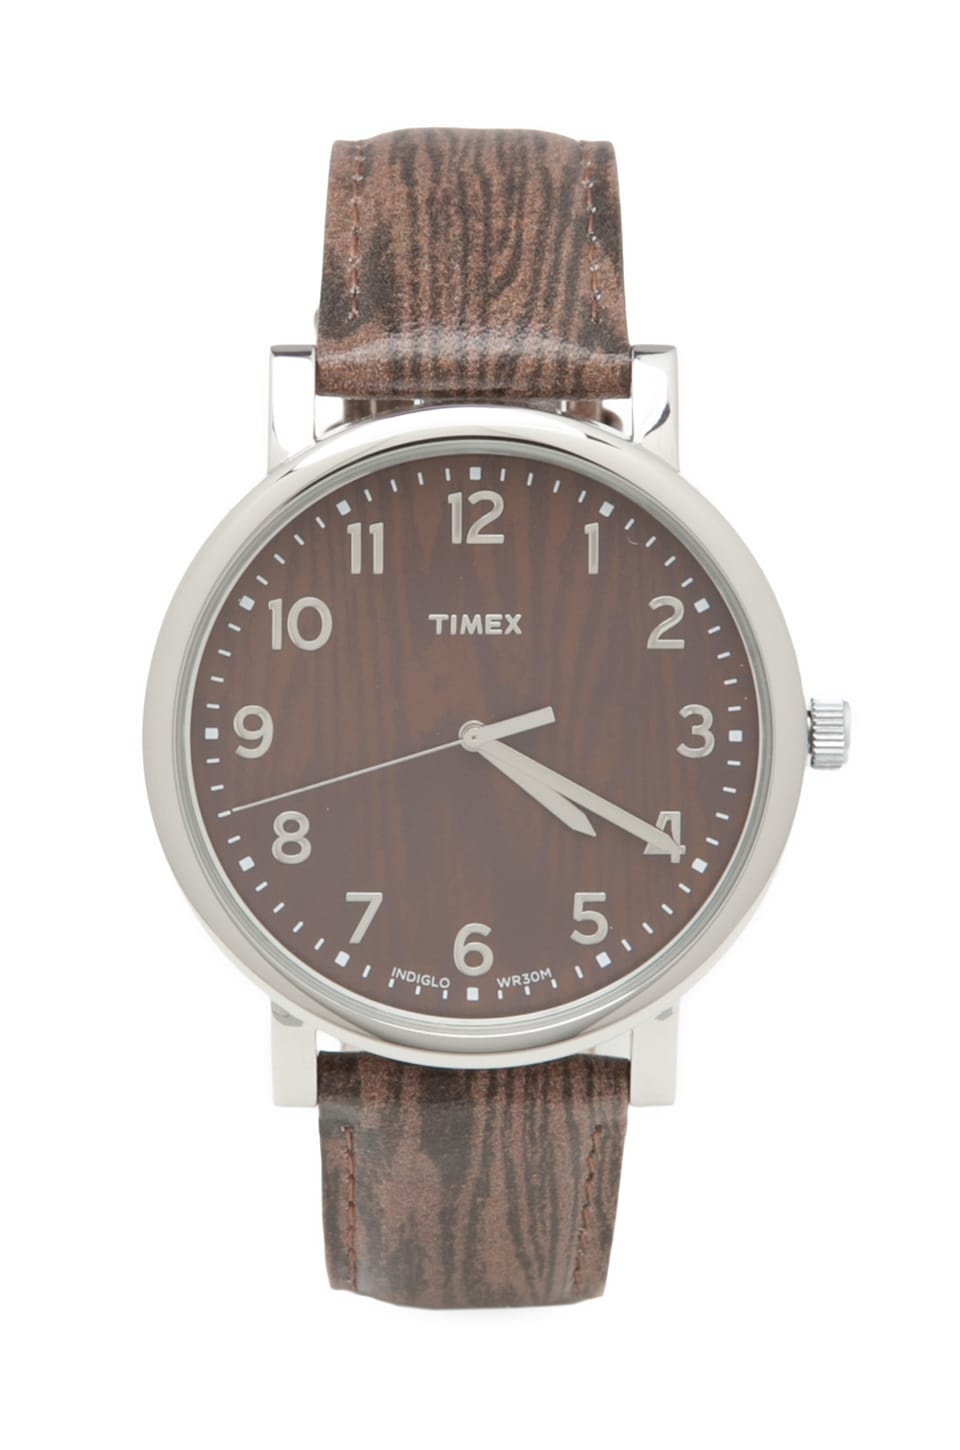 Timex Originals Classic Round Wood Effect Watch in Silvertone/ Woodgrain